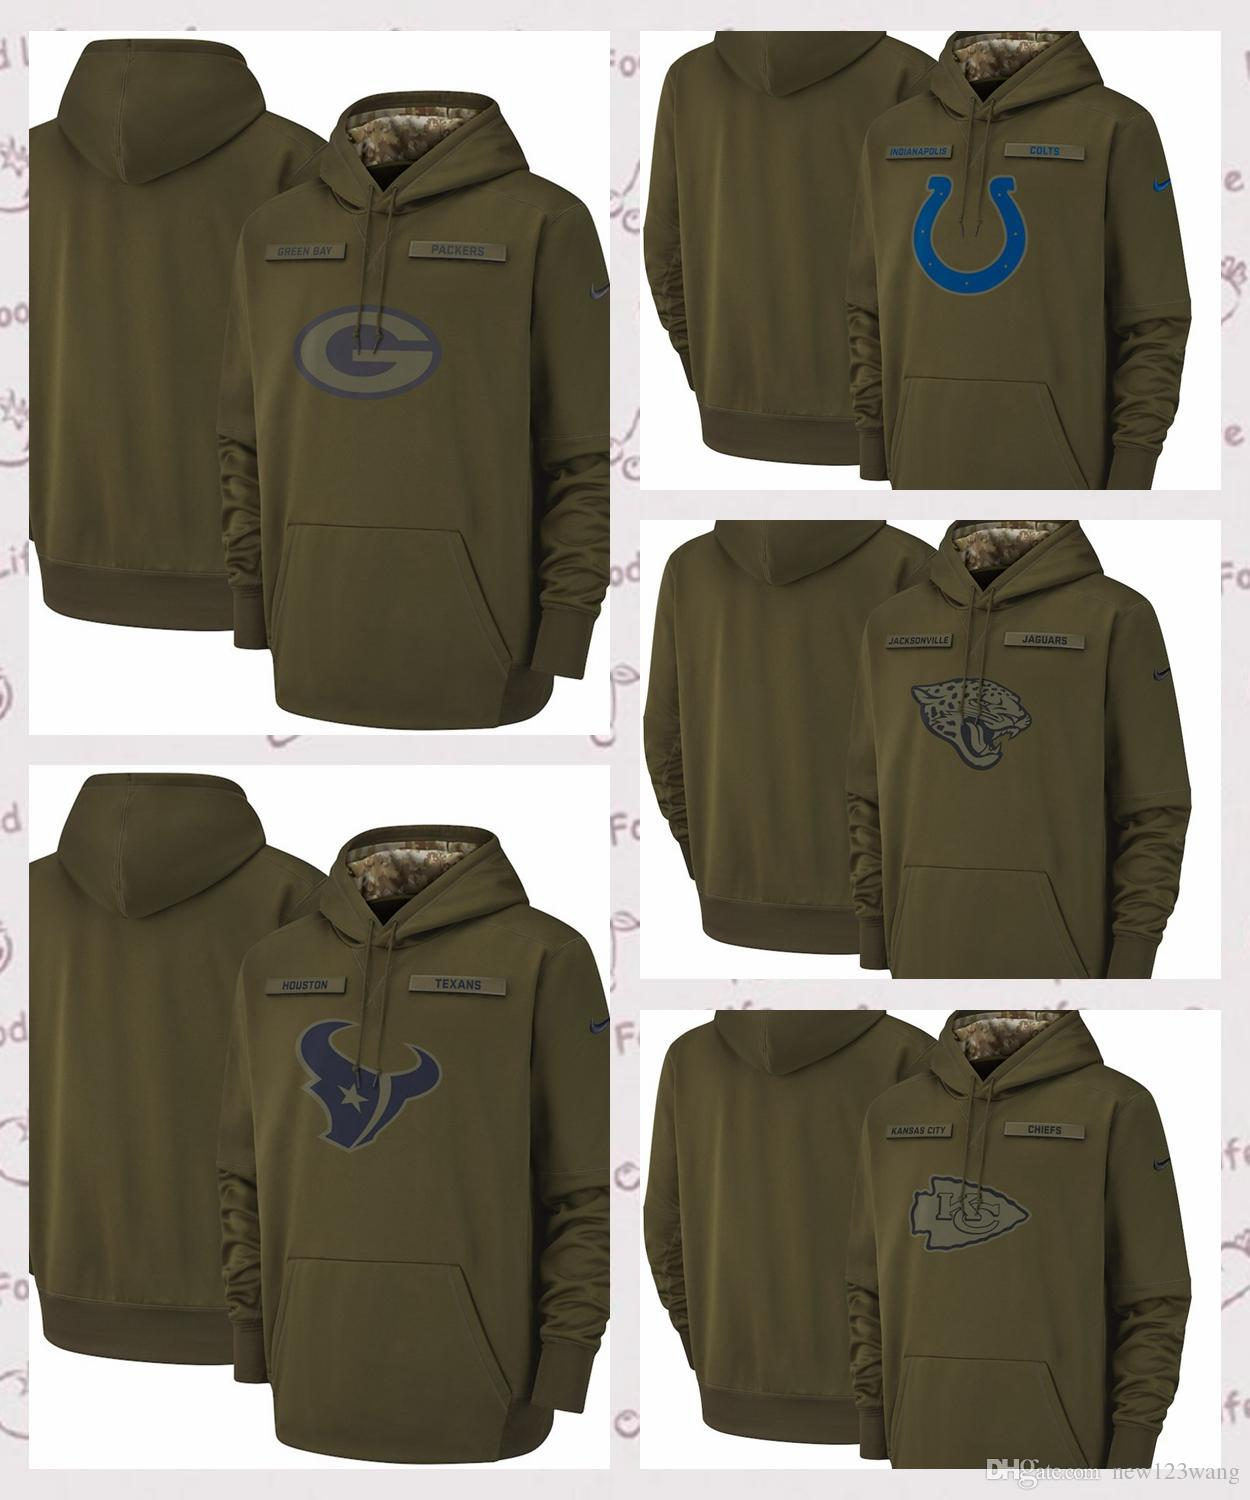 2019 Green Bay Packers Salute To Service Sideline Performance Hoodie 2018  New Army Green Men S Hoodie Rugby Team From New123wang c4d41c474